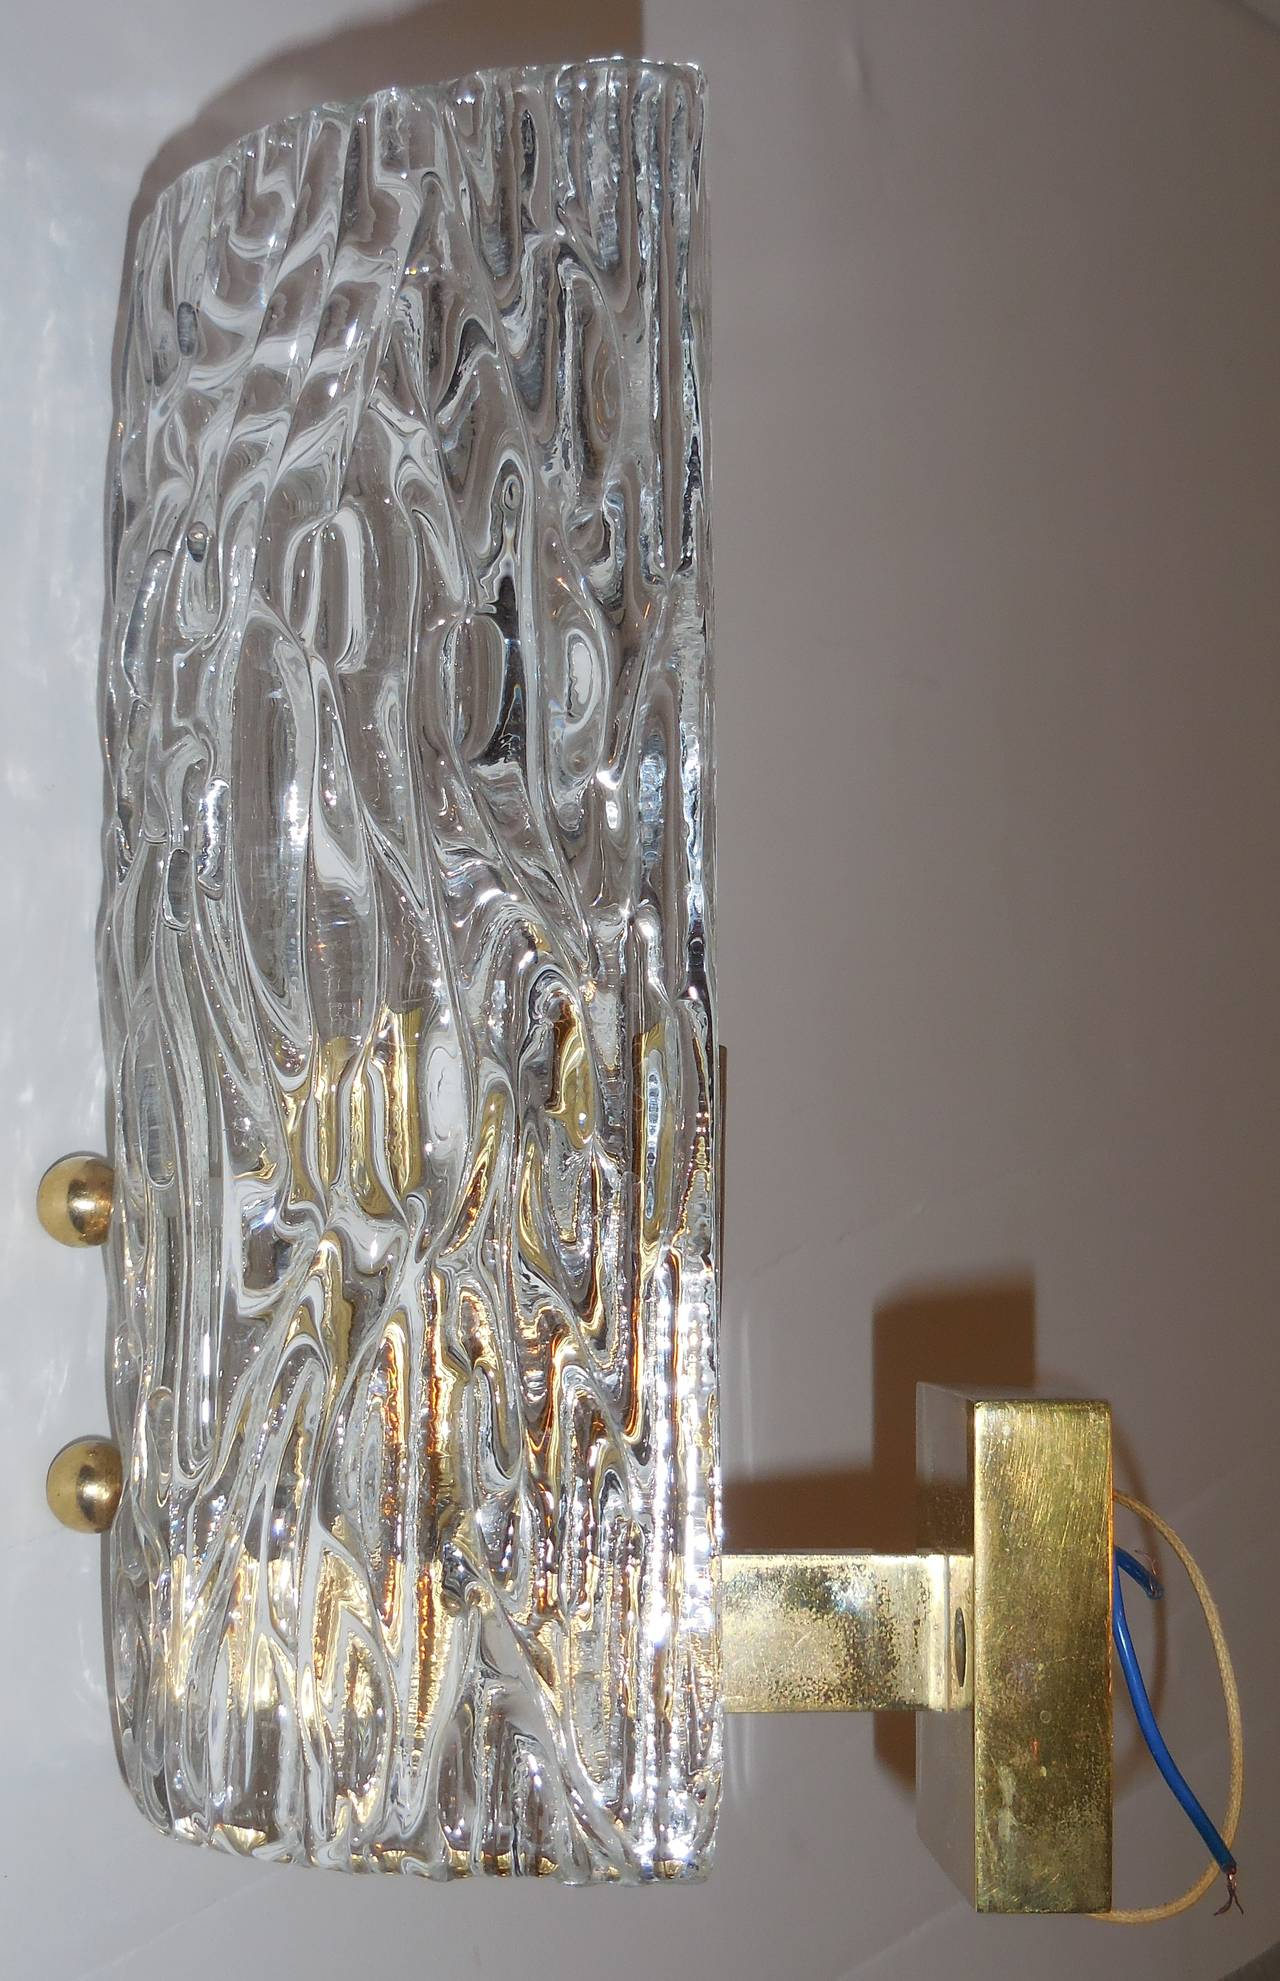 Wall Sconces Elegant : Pair of elegant textur glass wall sconces. at 1stdibs